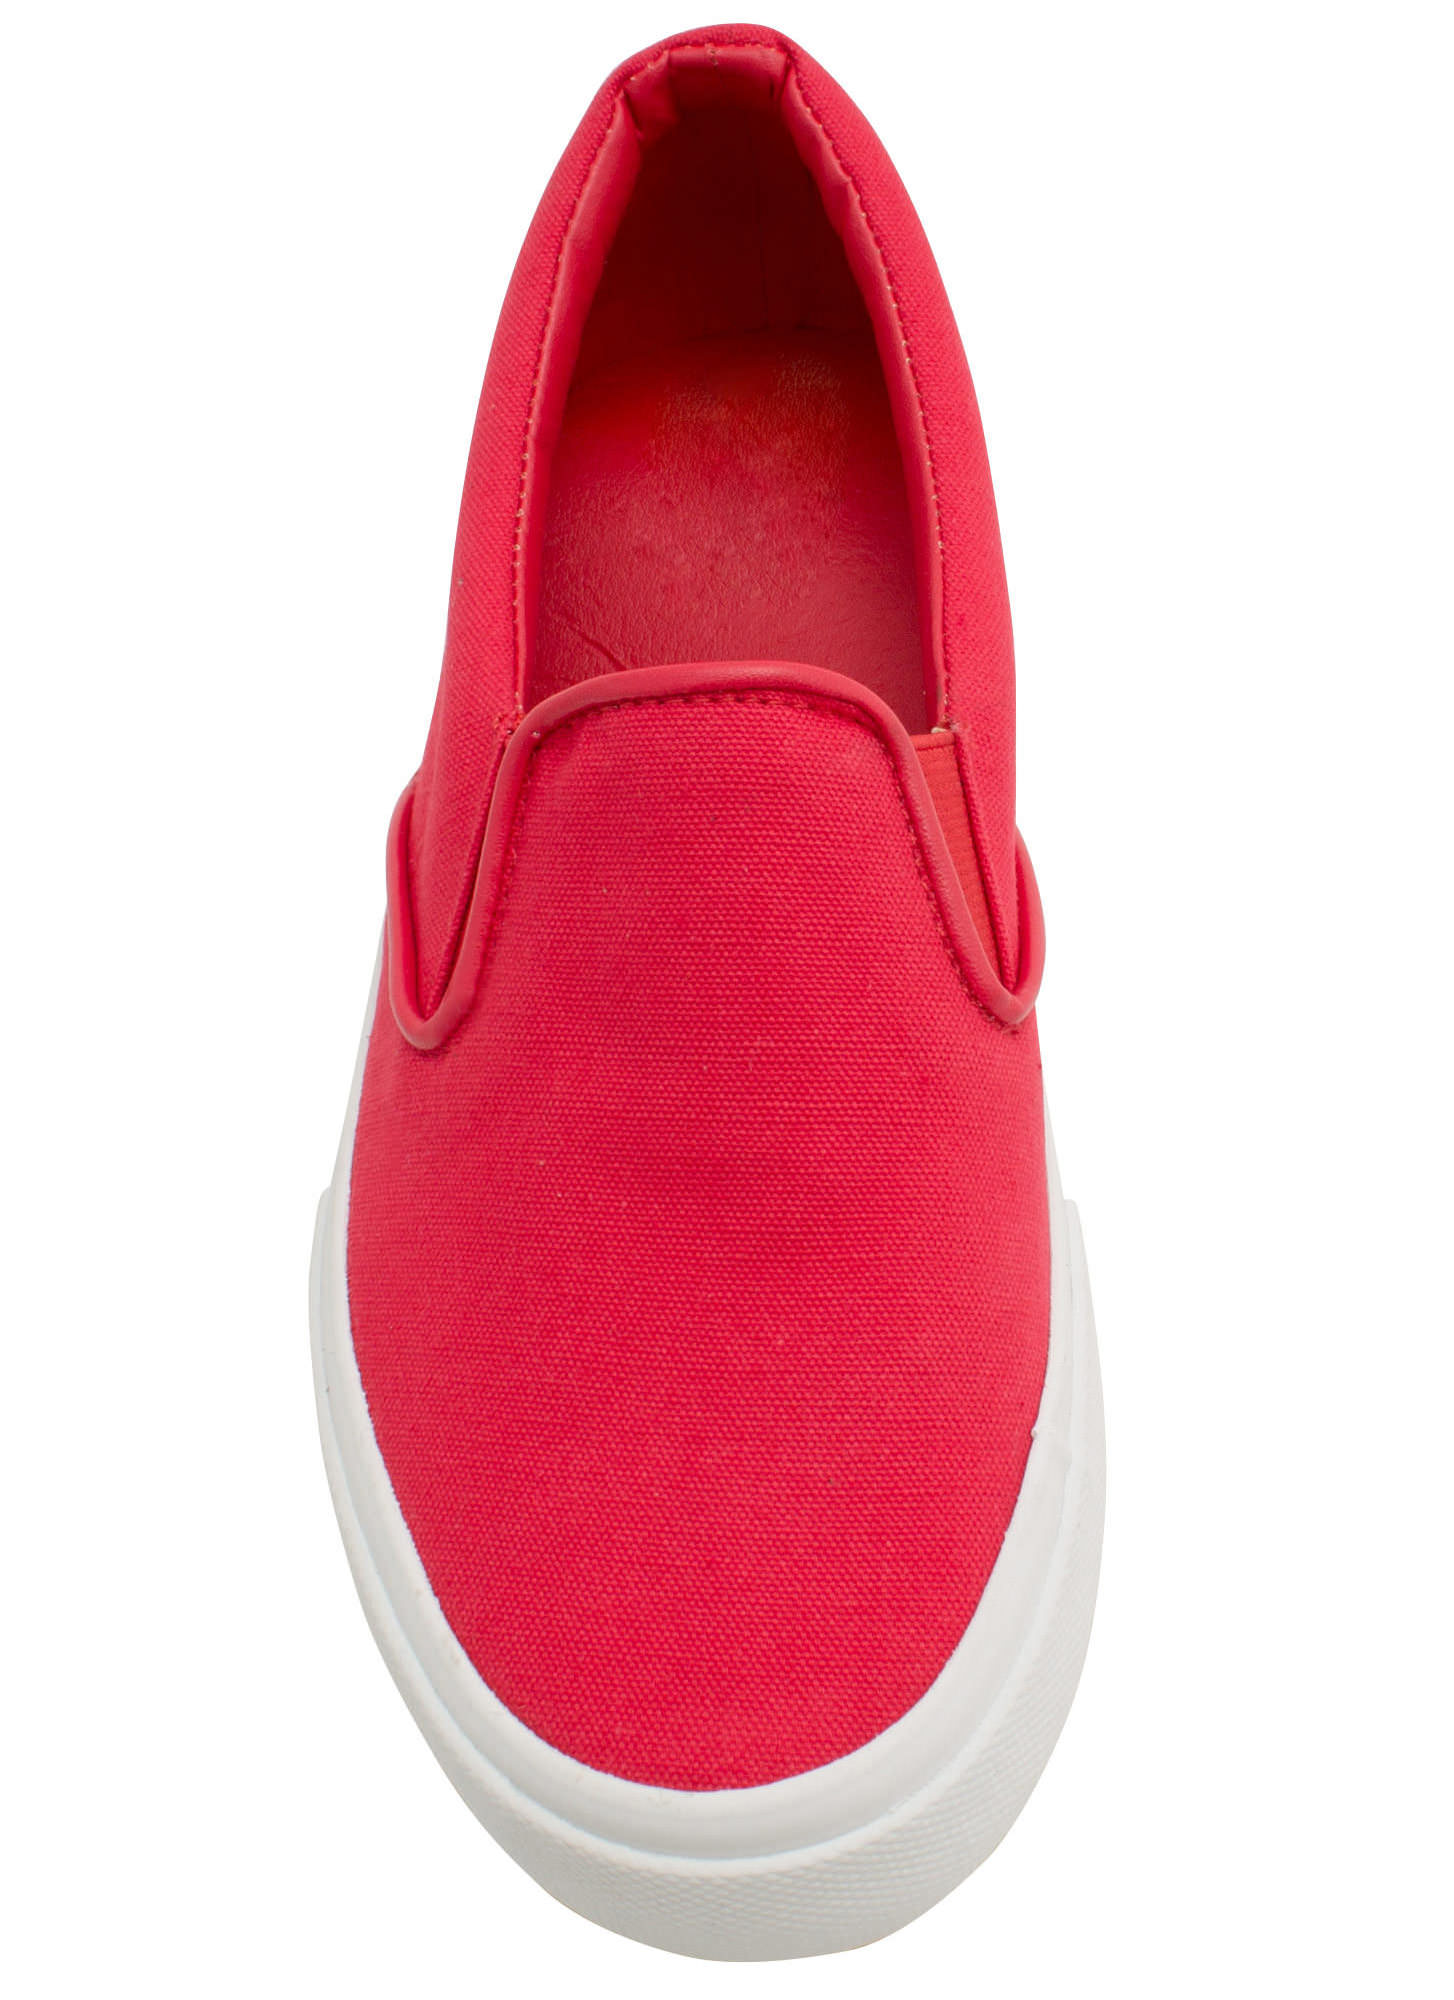 Solid Foundation Slip-On Sneakers RED